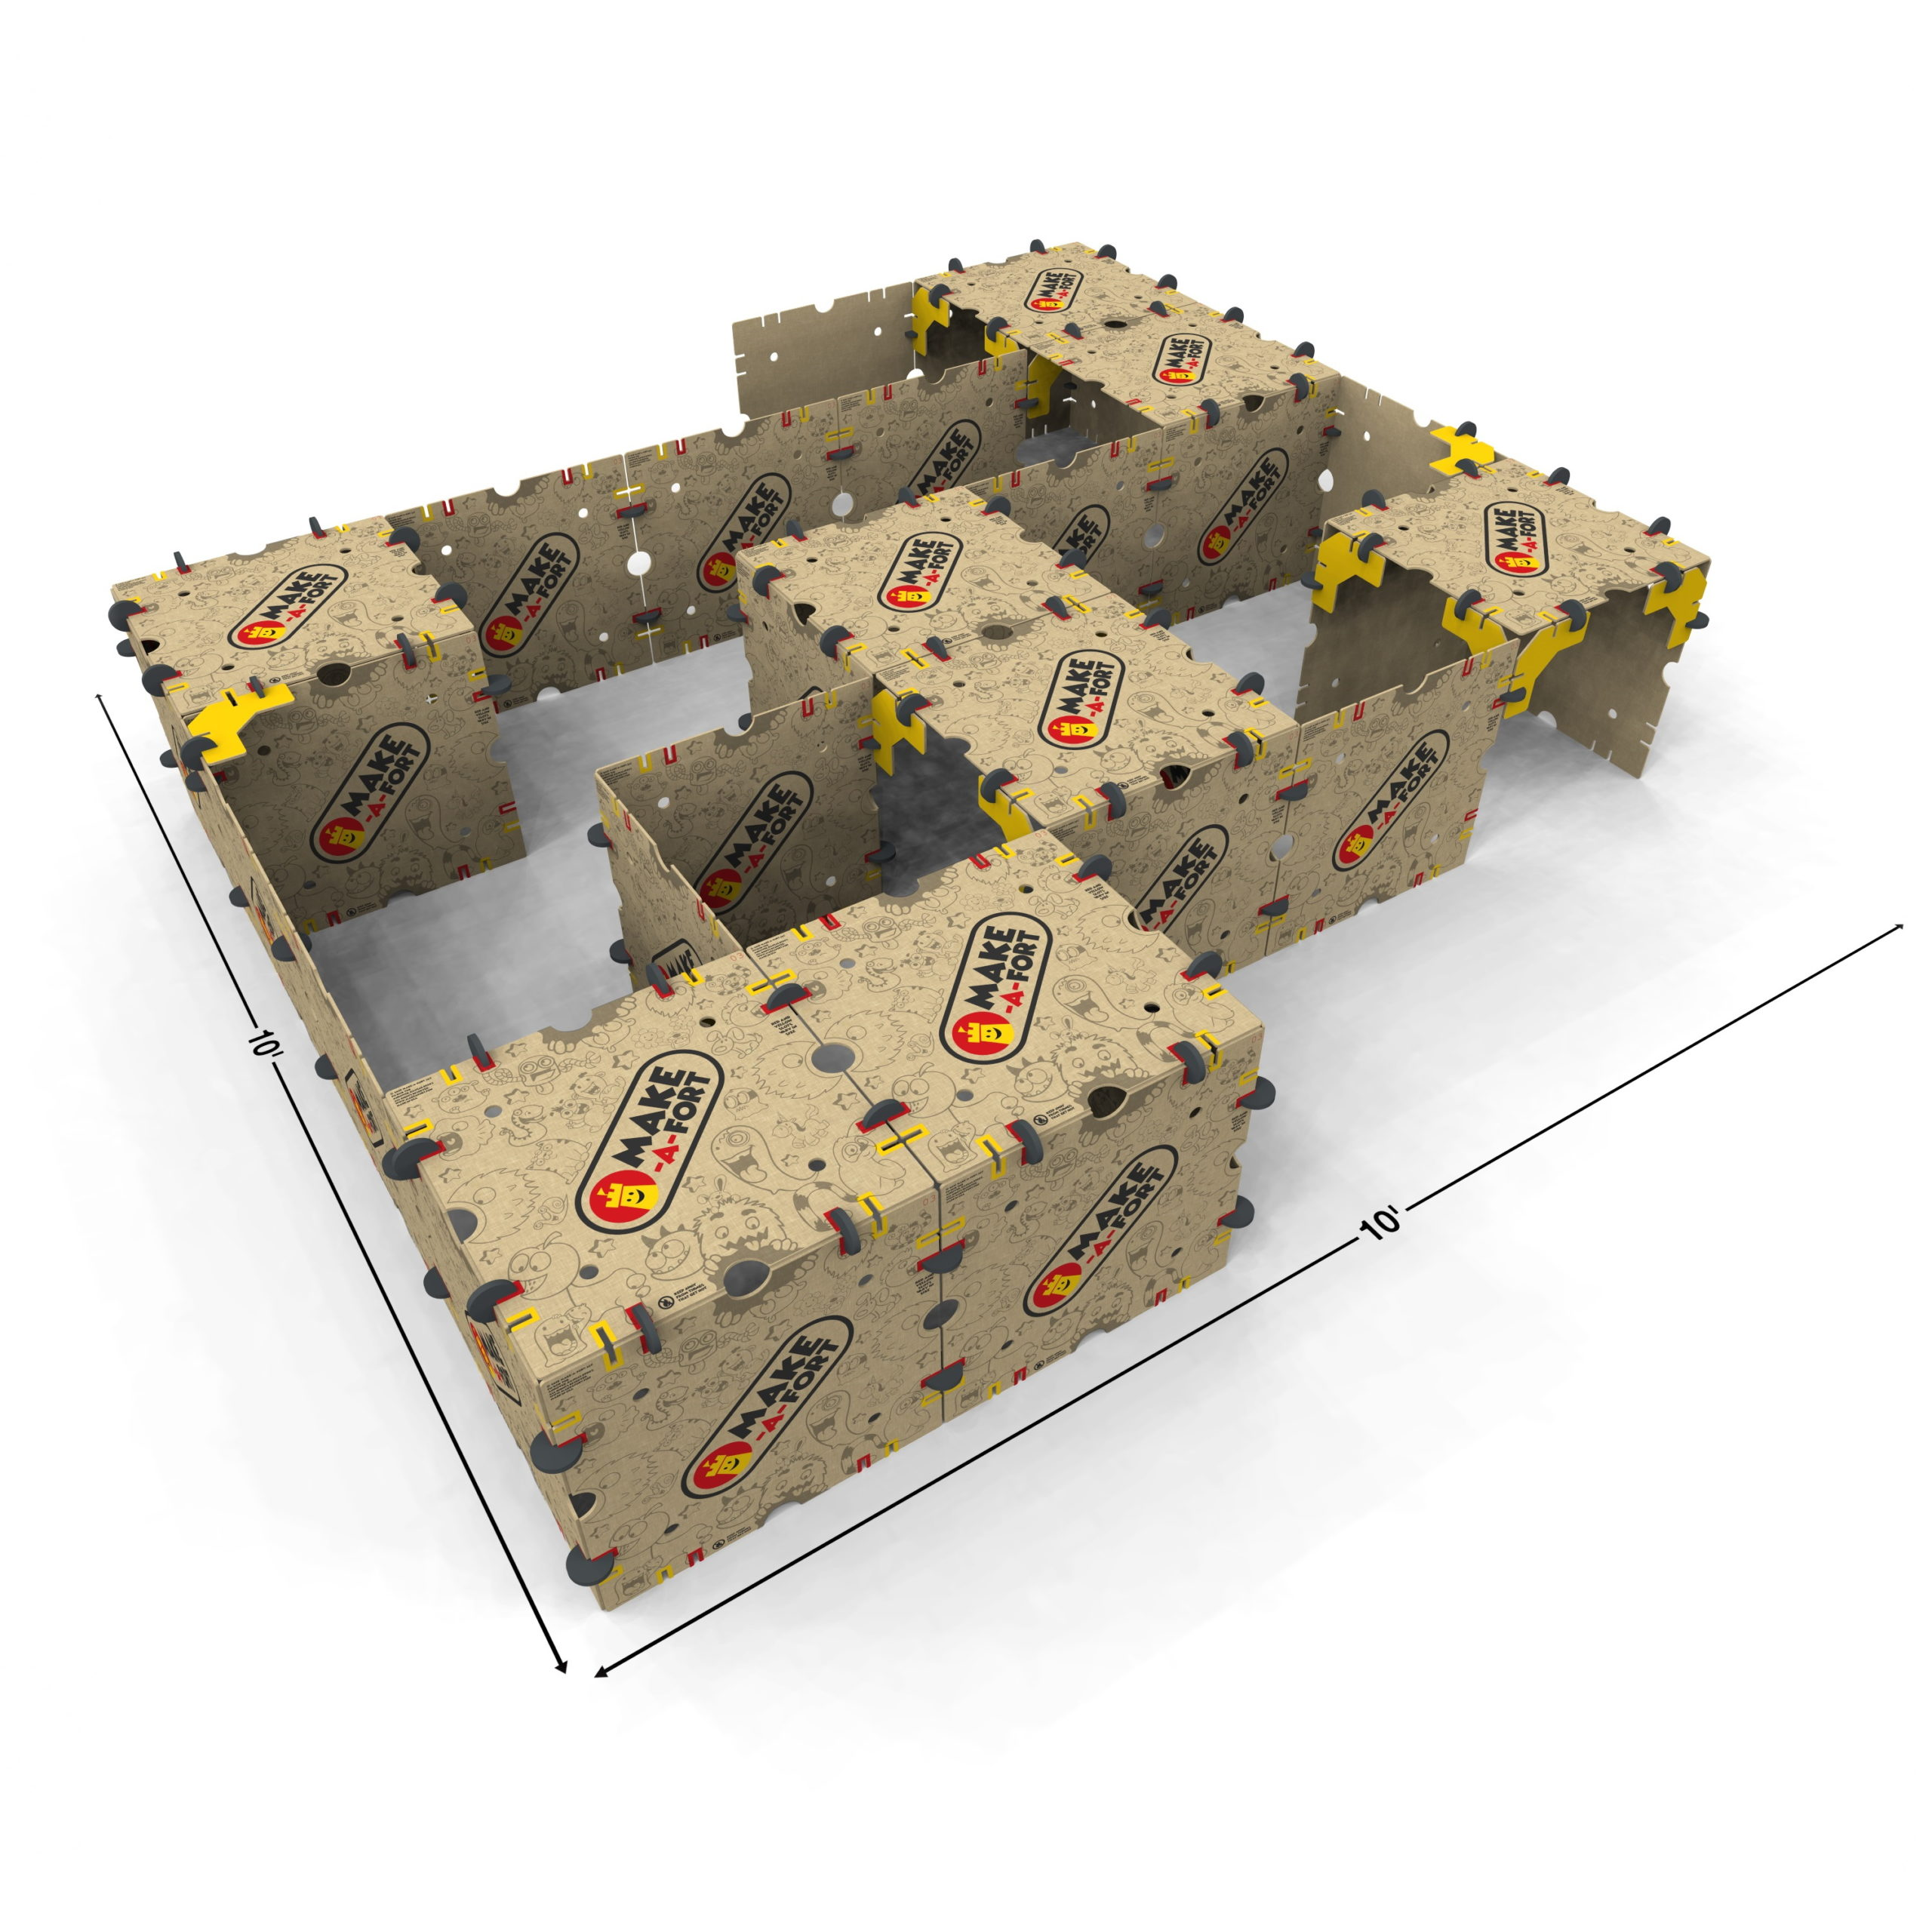 Make-A-Fort Maze Project